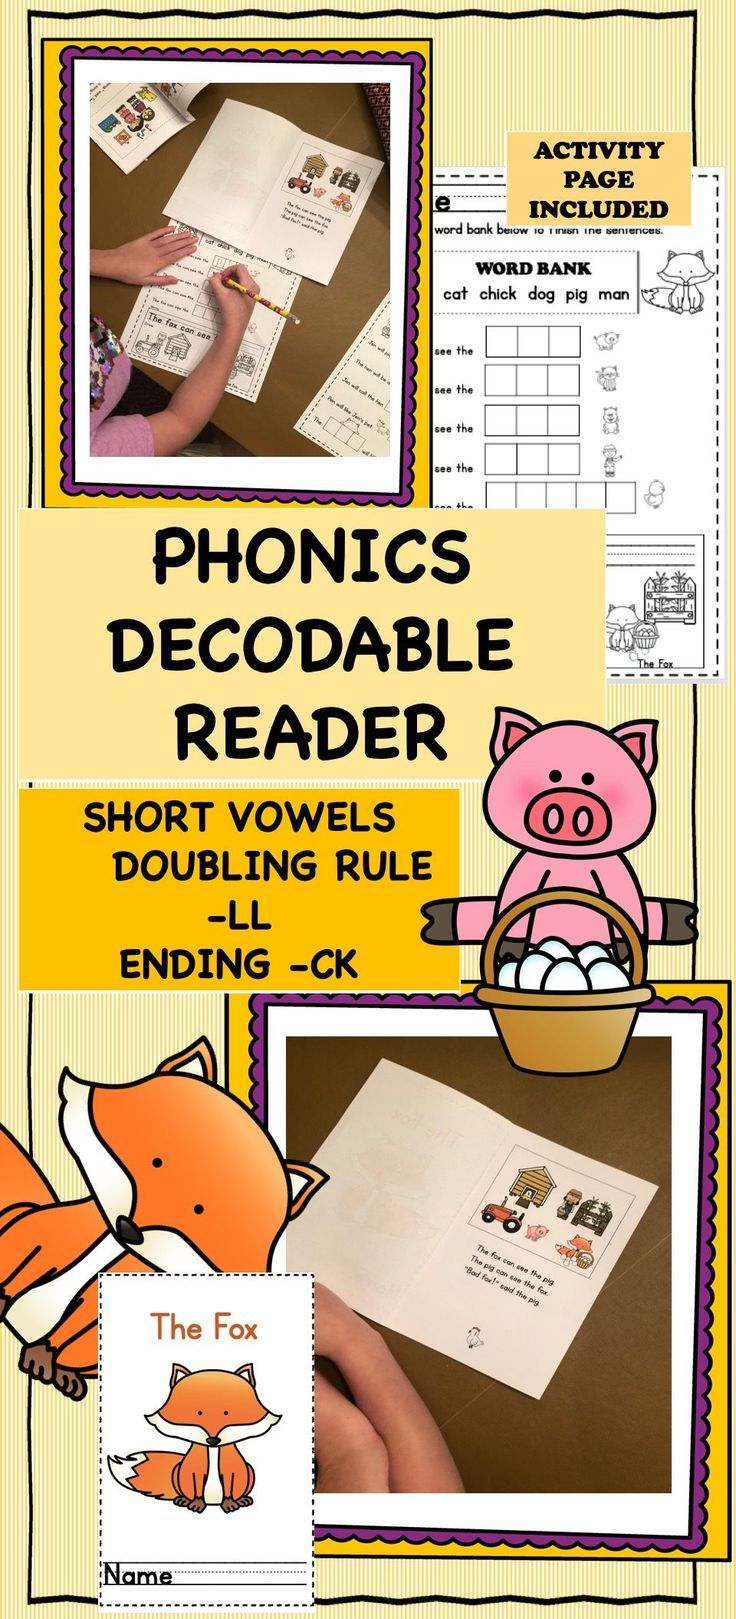 Phonics decodable reader (cvc, short vowel, doubling rule ll, ck, sight words)